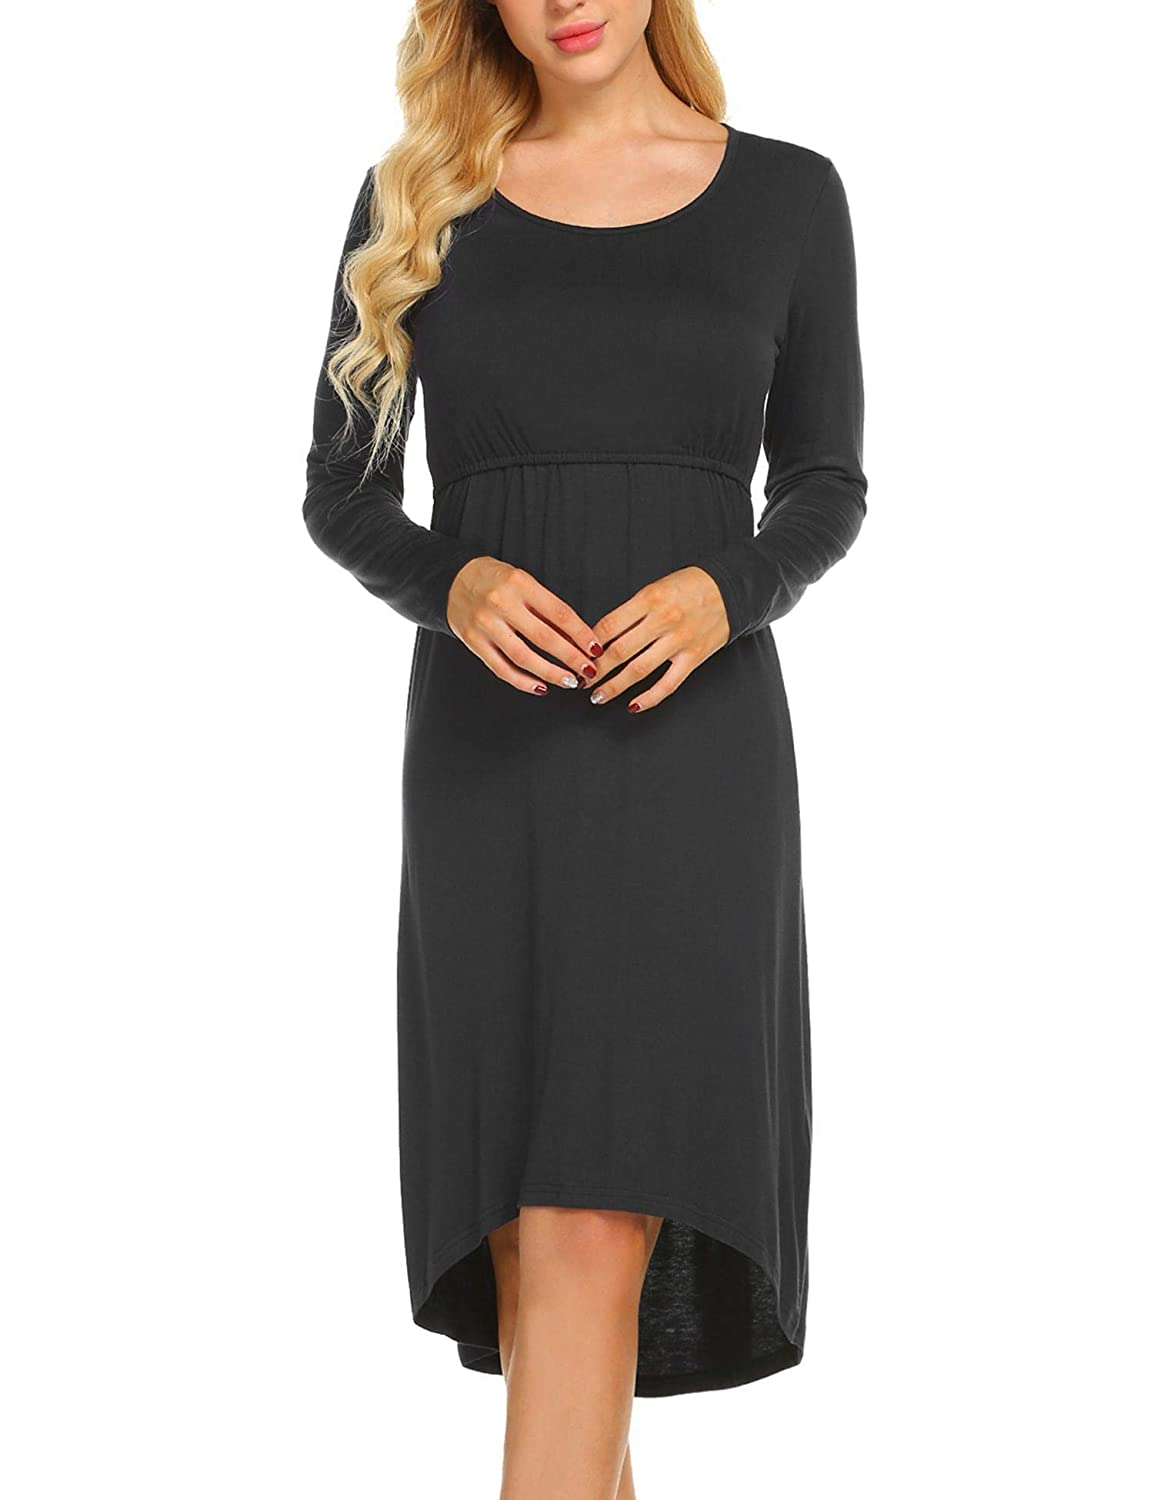 Skylin Delivery Labor Nursing Nightgown Womens Cotton Pregnancy Gown for  Hospital Long Sleeve Breastfeeding Dress S-XXL at Amazon Women s Clothing  store  015f973d6